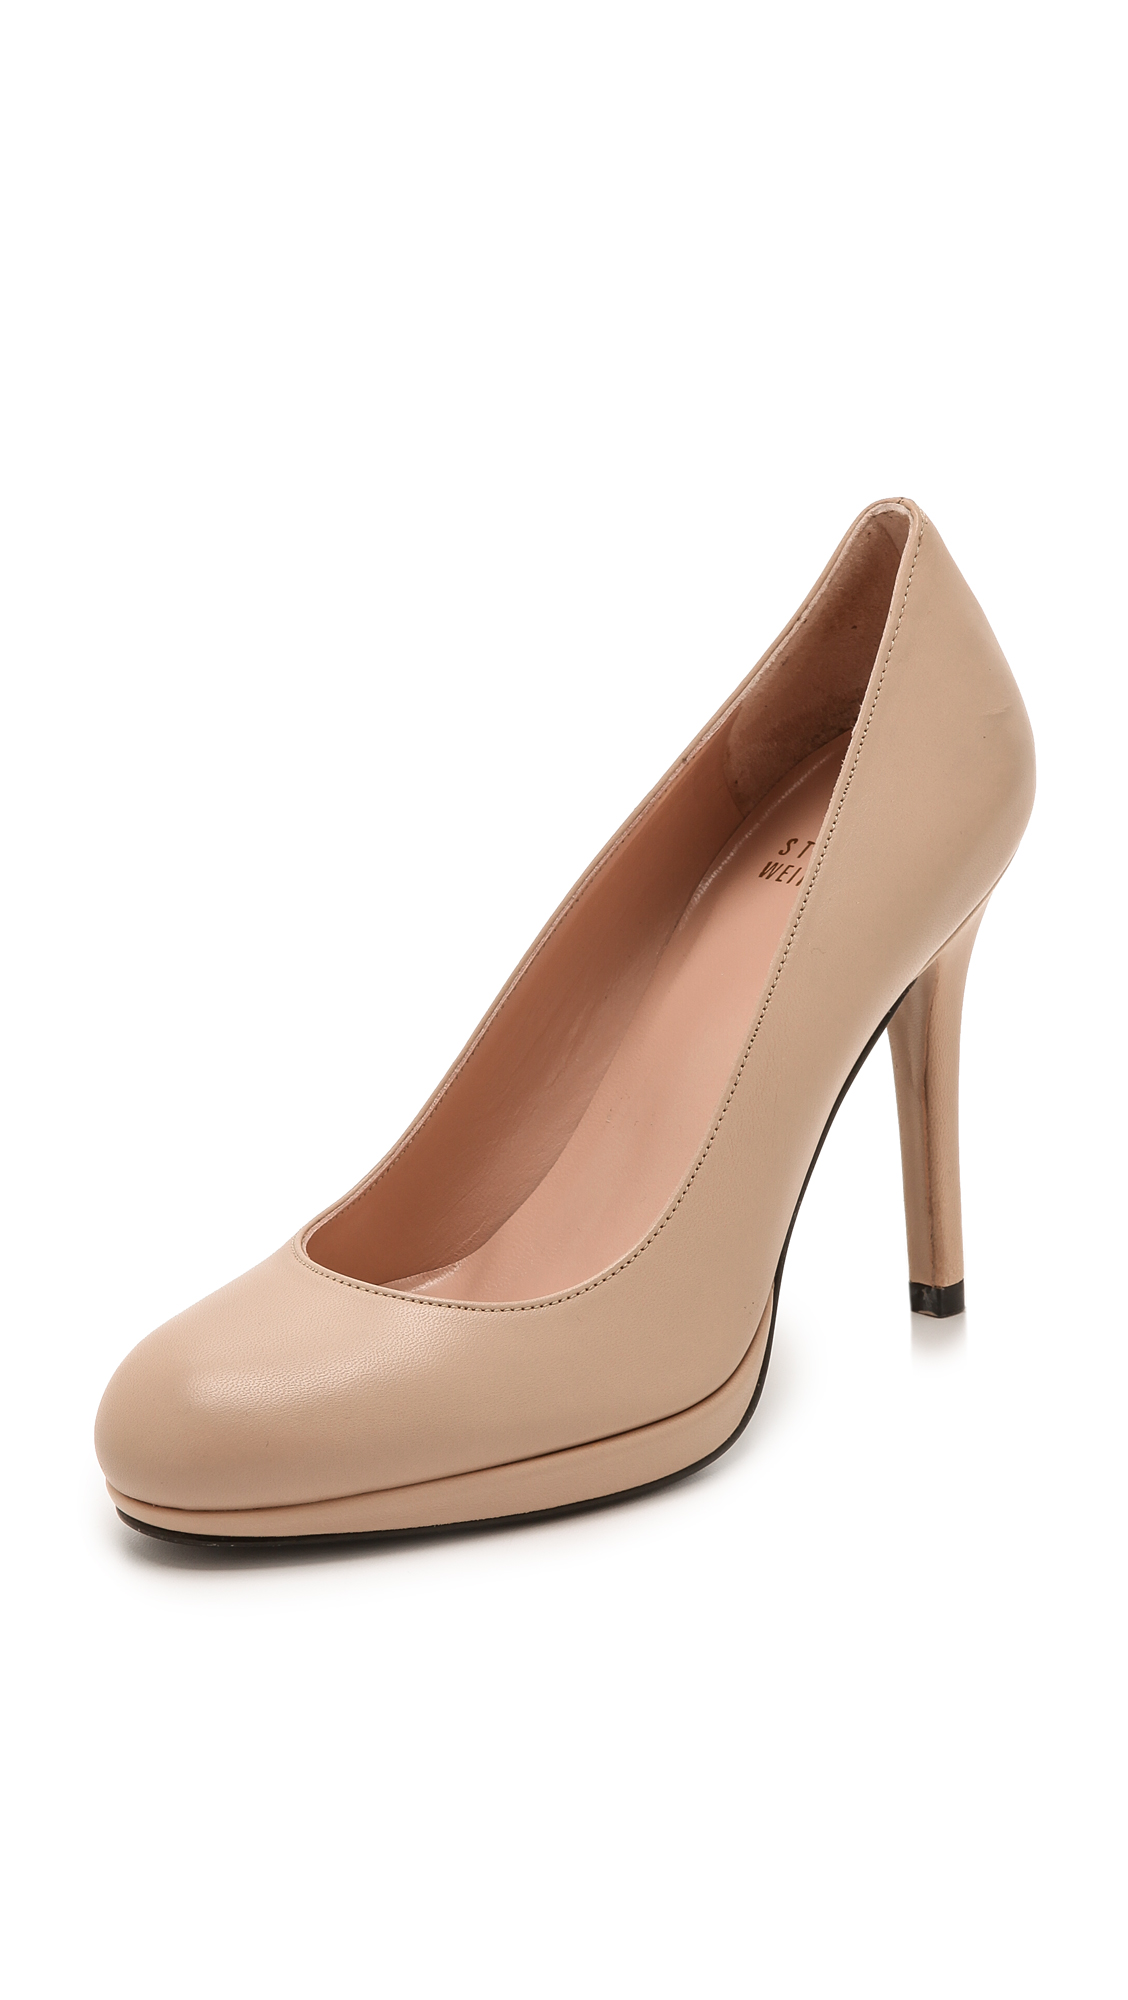 Stuart Weitzman Swoon 90mm Leather Pumps - Adobe